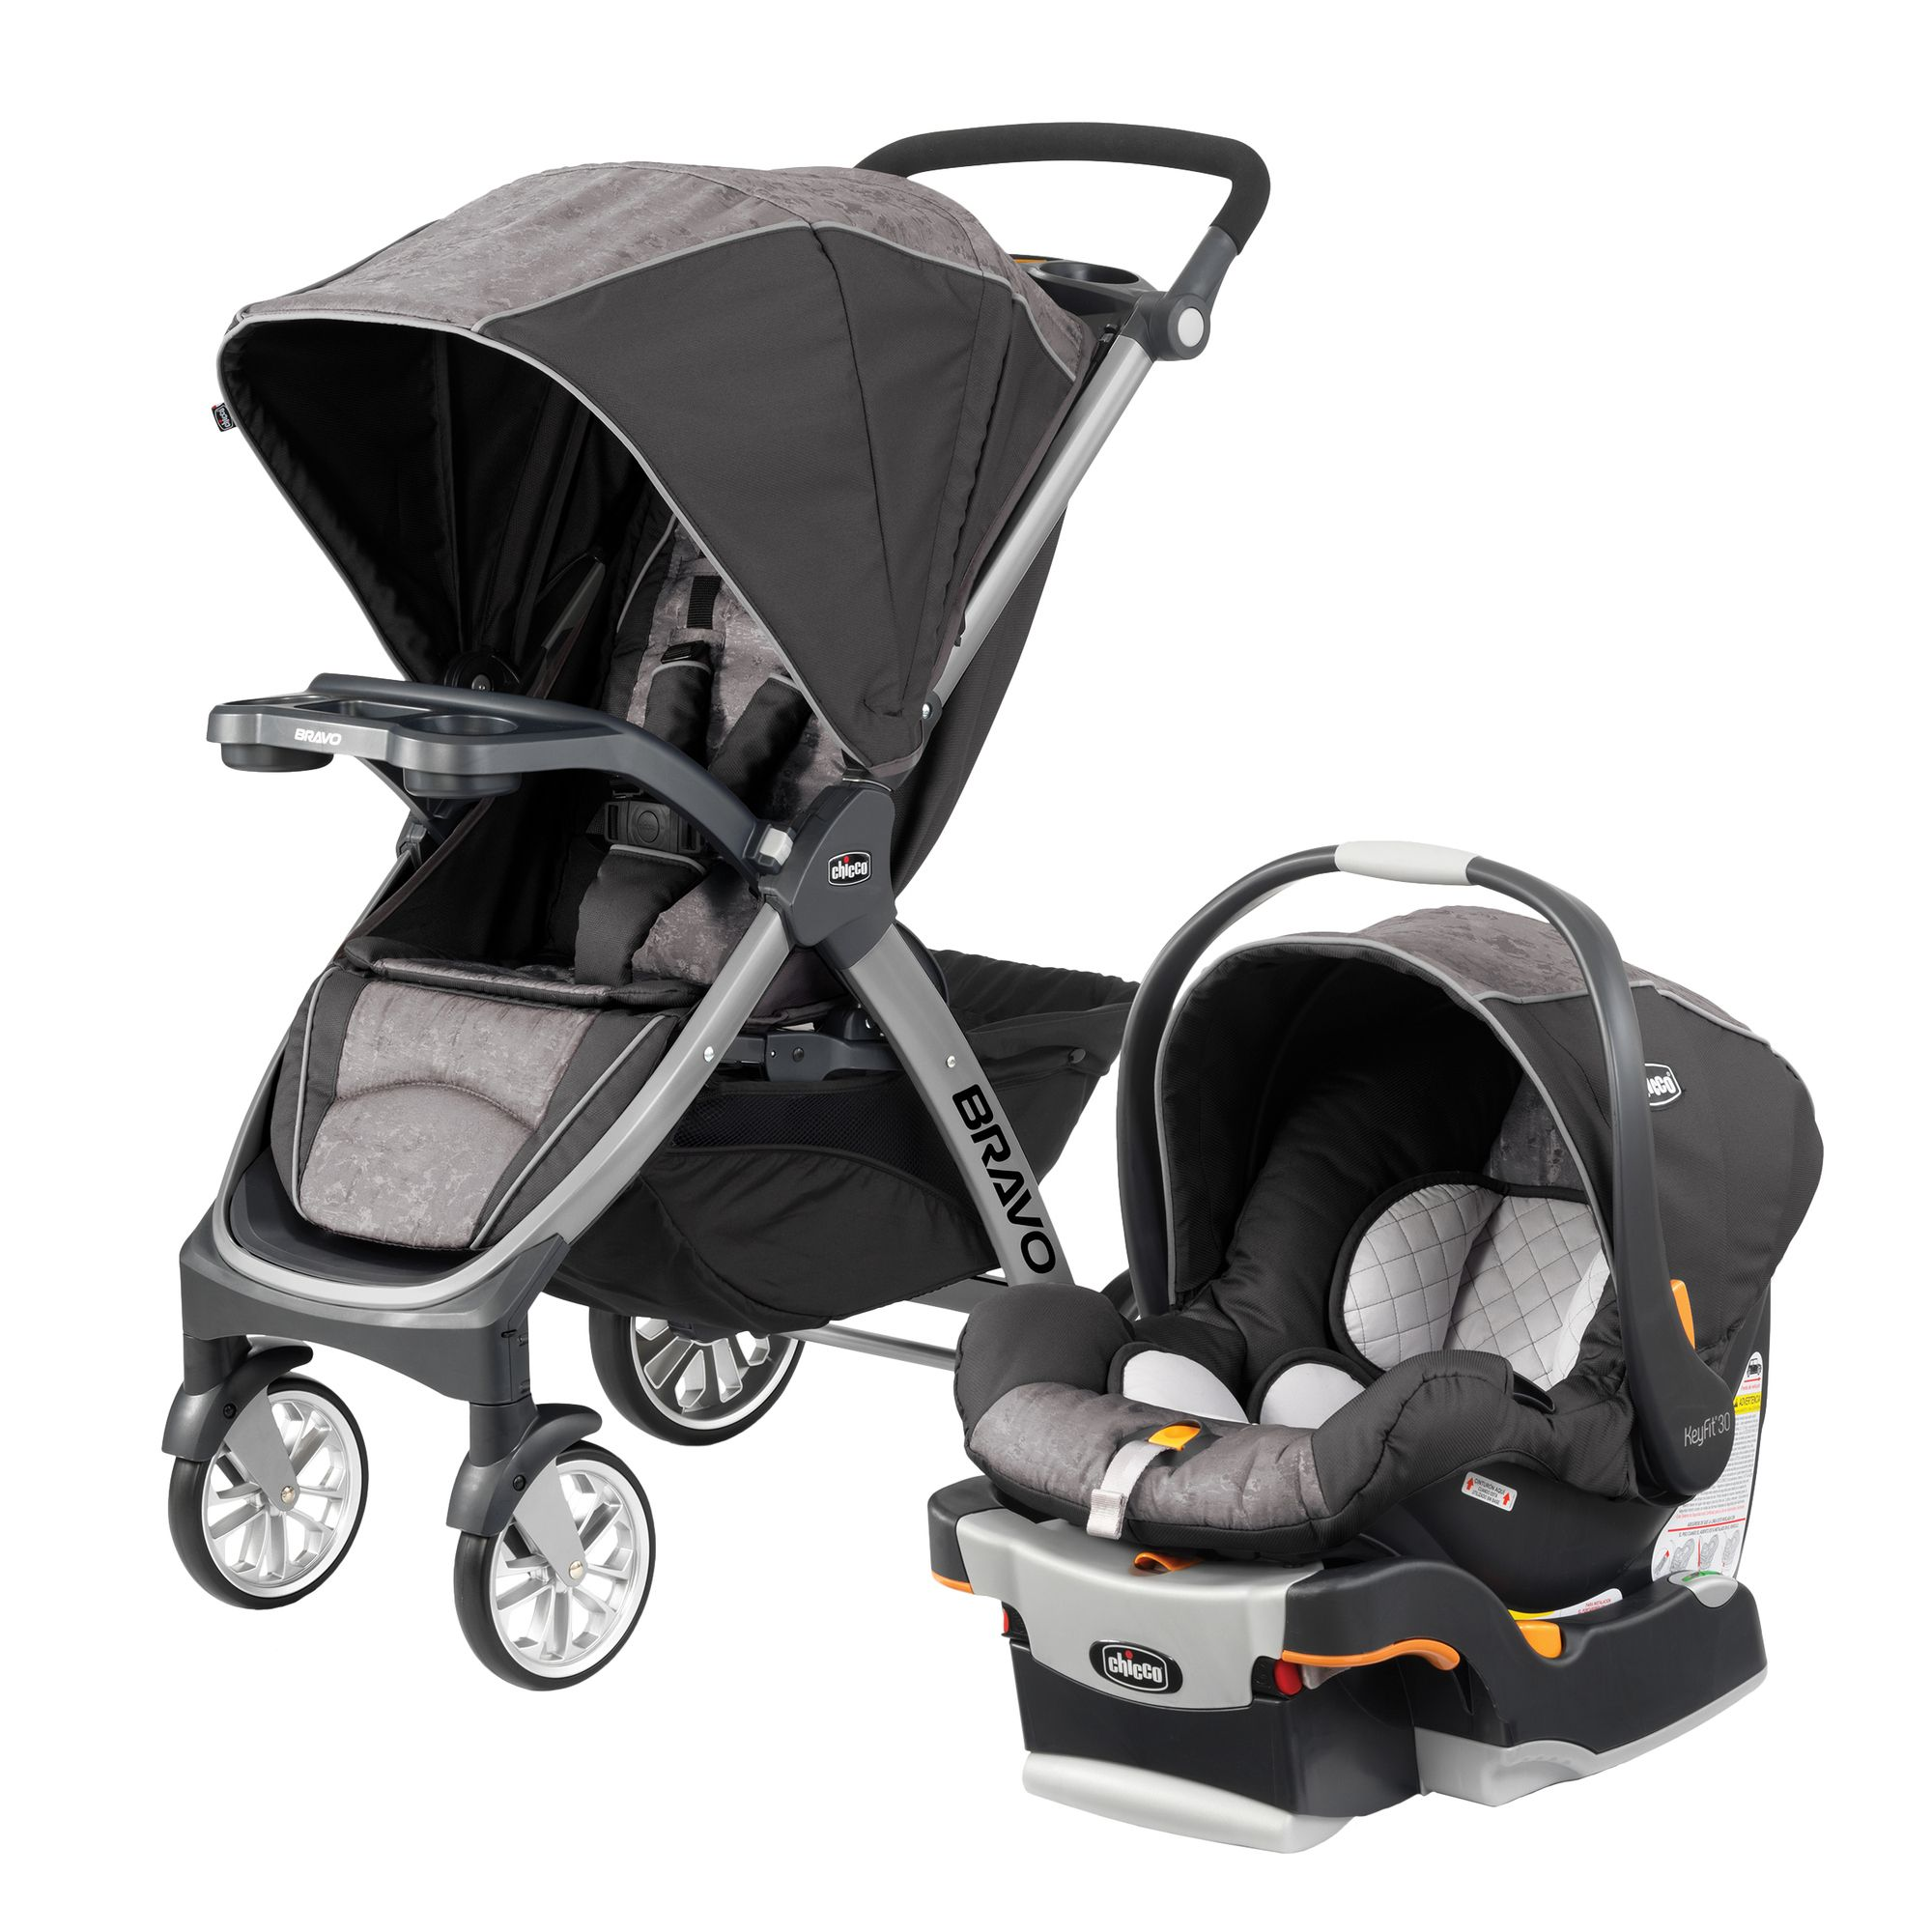 The chiccousa Bravo® Trio 3in1 travel system makes it